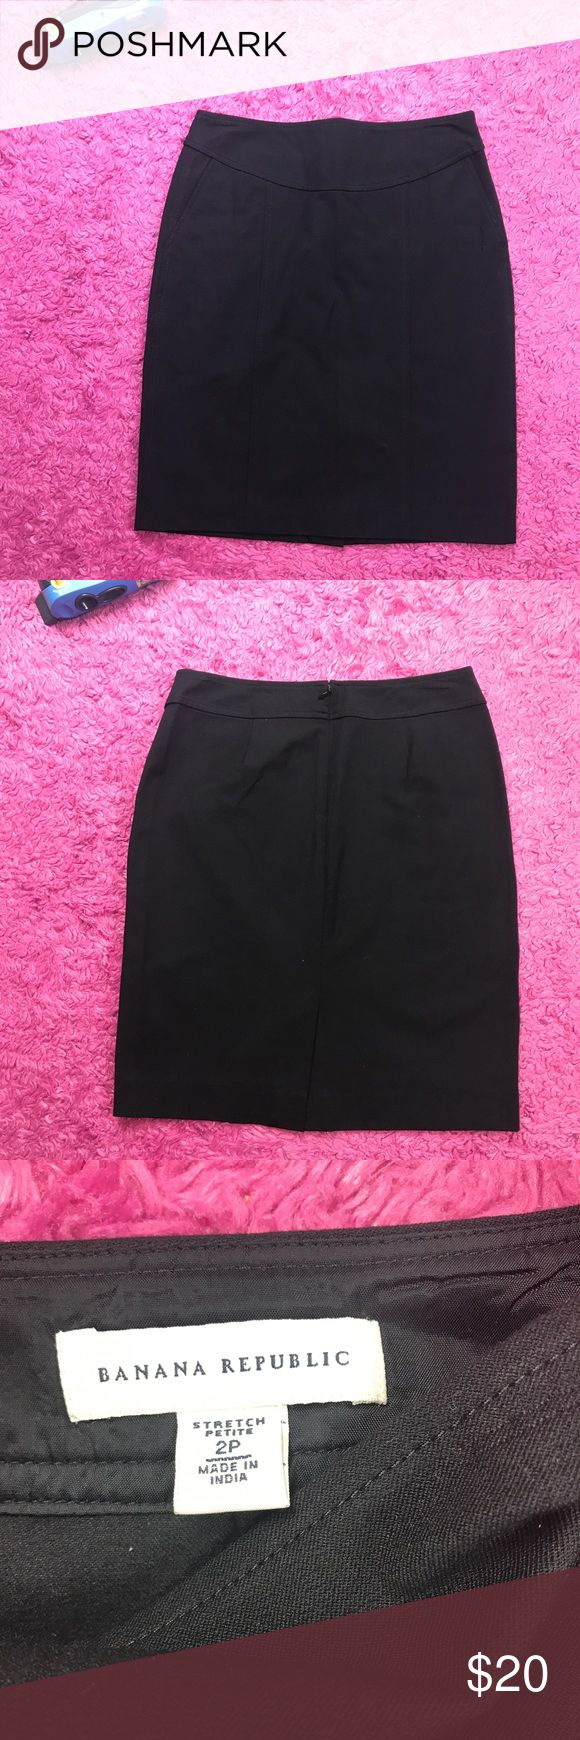 "Banana Republic Black Pencil Skirt Size 2 Petite Banana Republic Pencil Skirt Womens Petite Black Stretch Career Work Size 2 2P  Type: Skirt Style: Petite Pencil Skirt Brand: Banana REpublic Material: 56% Viscose 39% Cotton 5% Spandex Color: Black Measurements: Waist: 28"" Flat – Length: 20 Condition: Used- no rips, no stains or no peeling Country of Manufacturer: India Banana Republic Skirts Pencil"